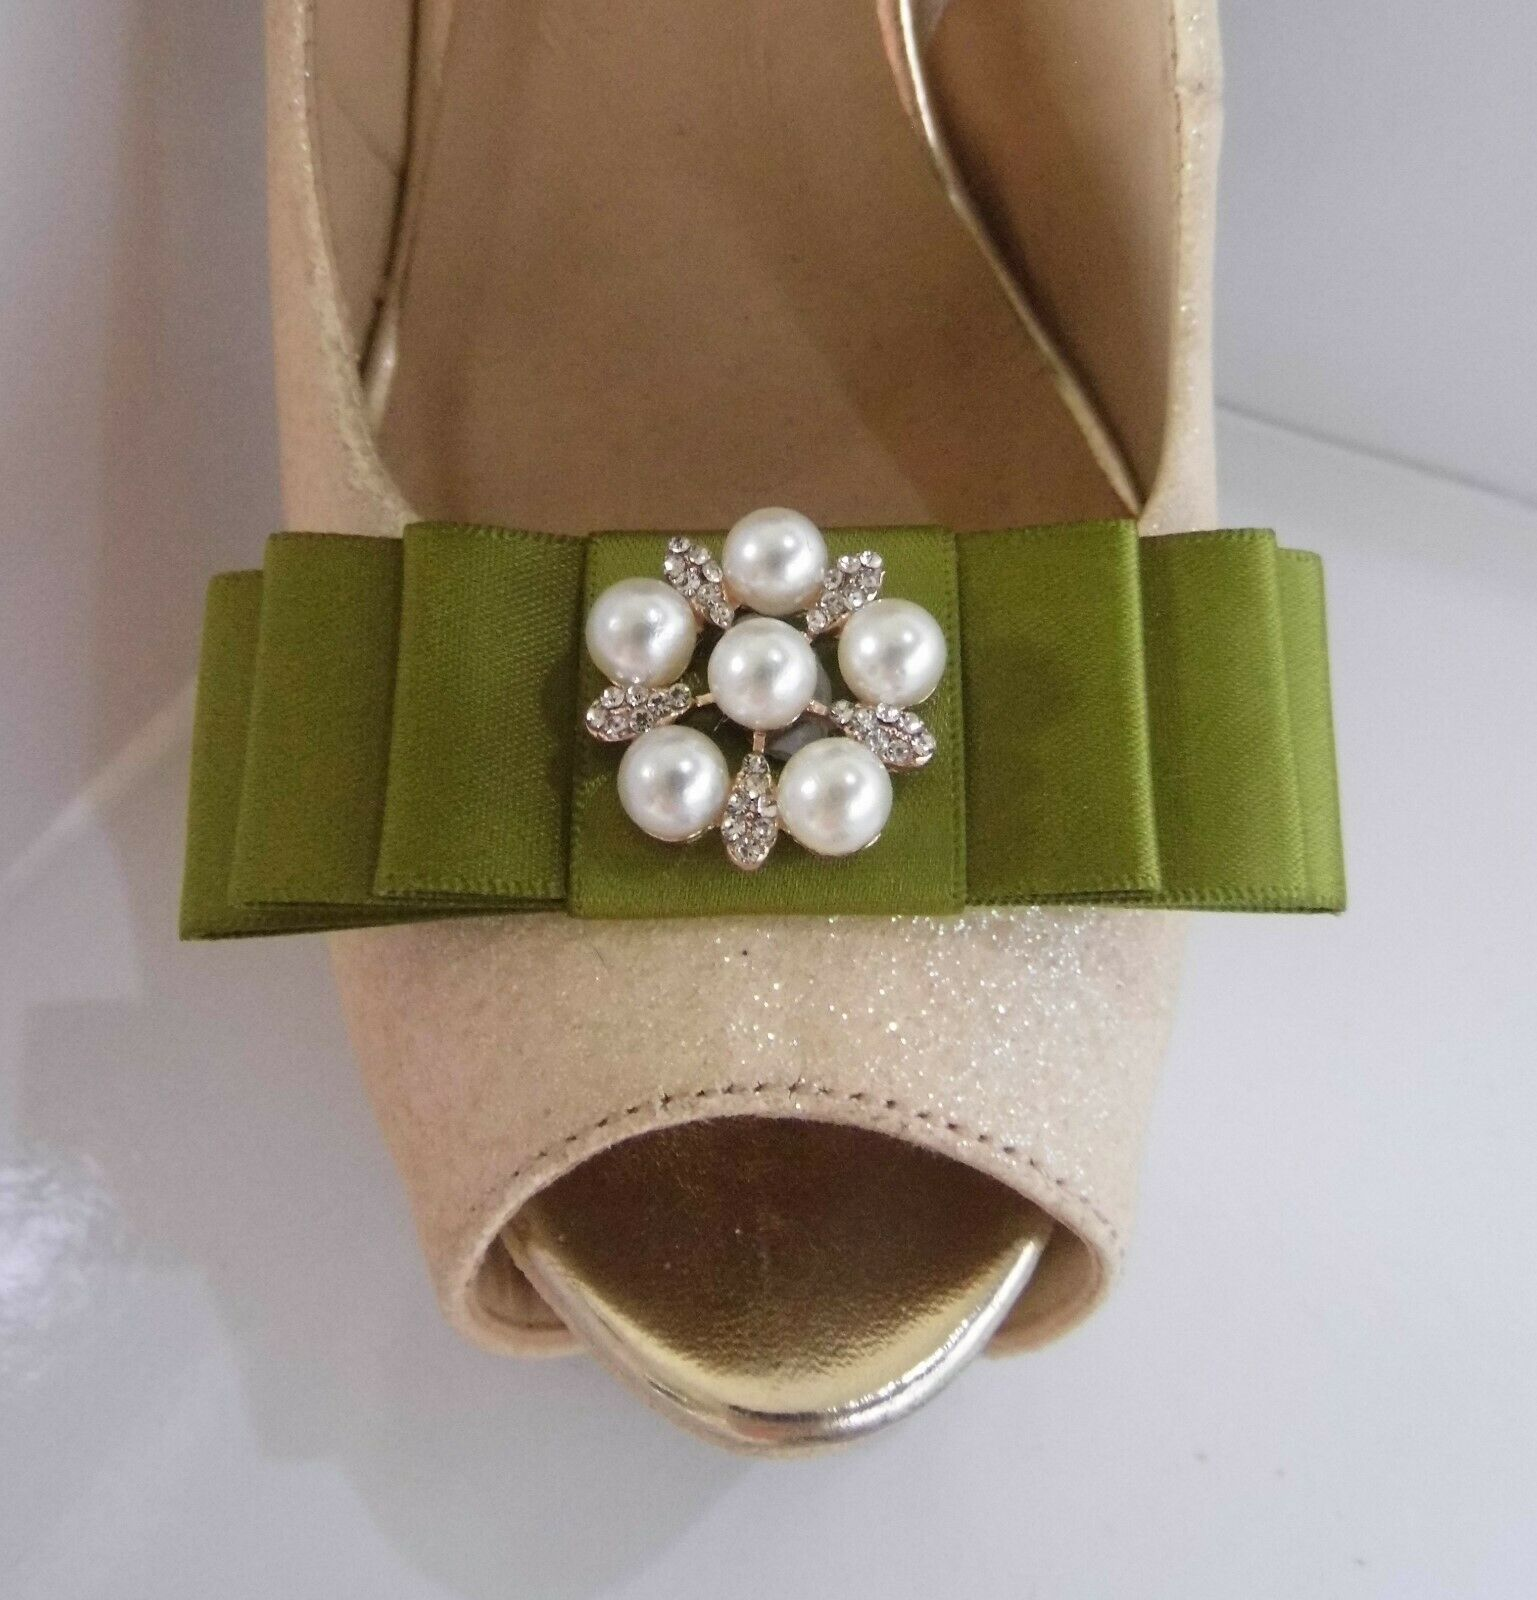 2 Moss Green Bow Clips for Shoes with Pearl & Diamante Clustered Centre